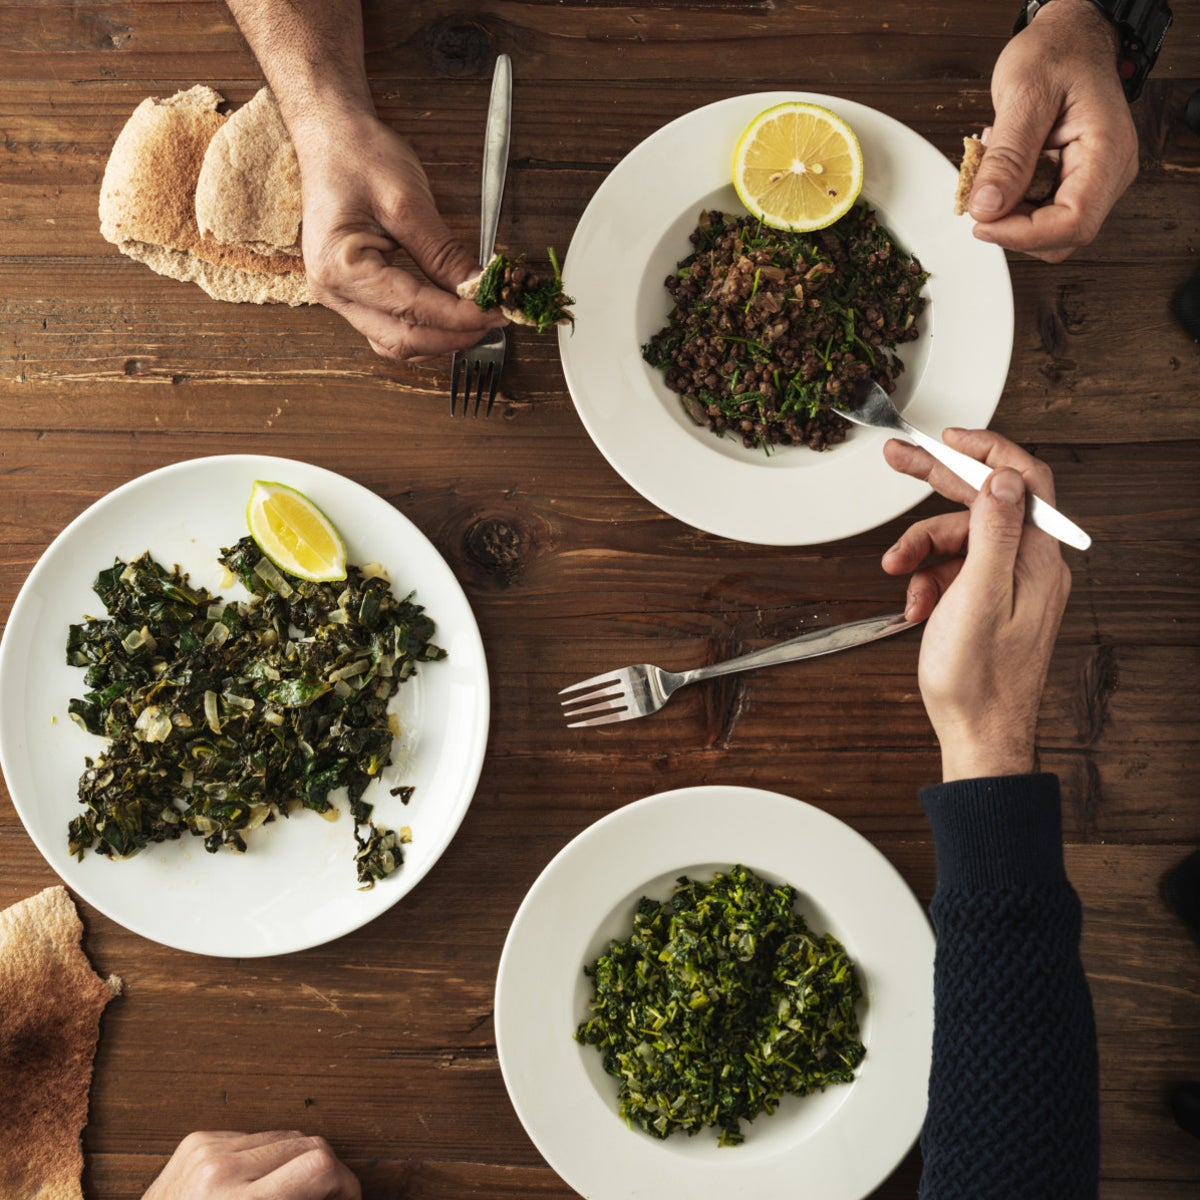 Dishes prepared from foraged greens, by Meidan Sadeh (Ahmed Hamdoun), of Kibbutz Lotem in the Galilee, in northern Israel, Jan. 2021